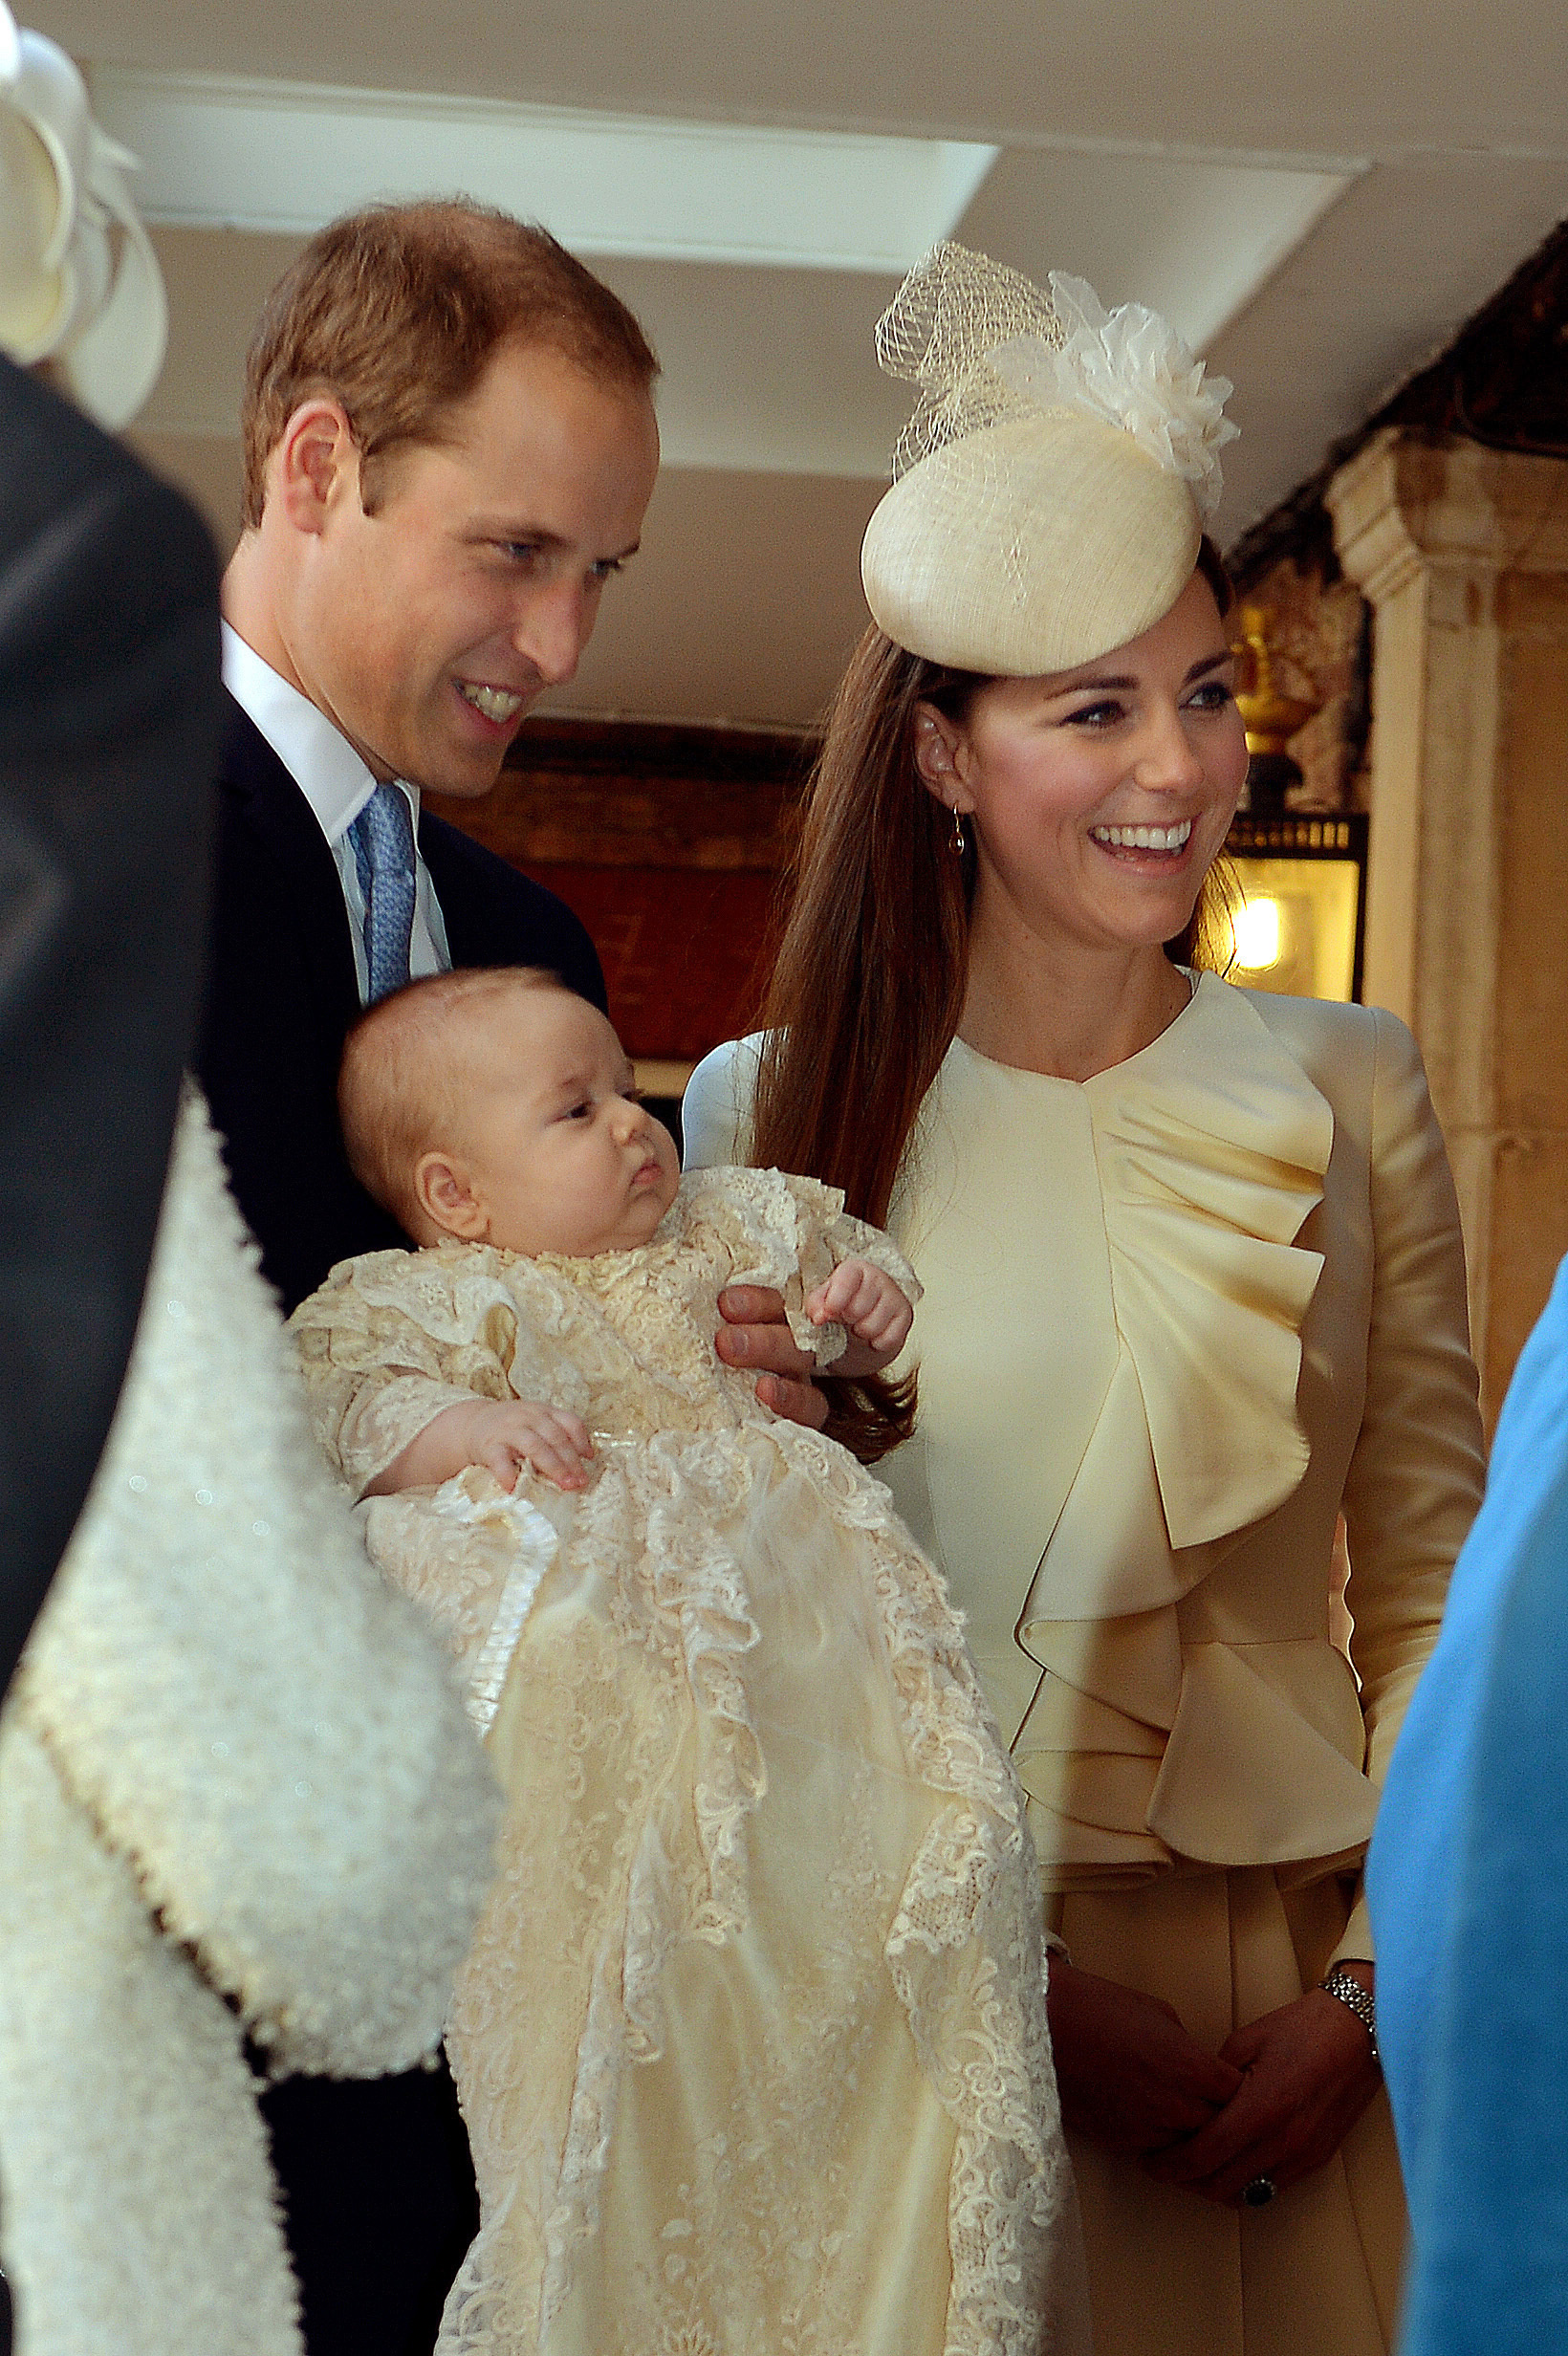 The Duke and Duchess of Cambridge with Prince George at his Christening